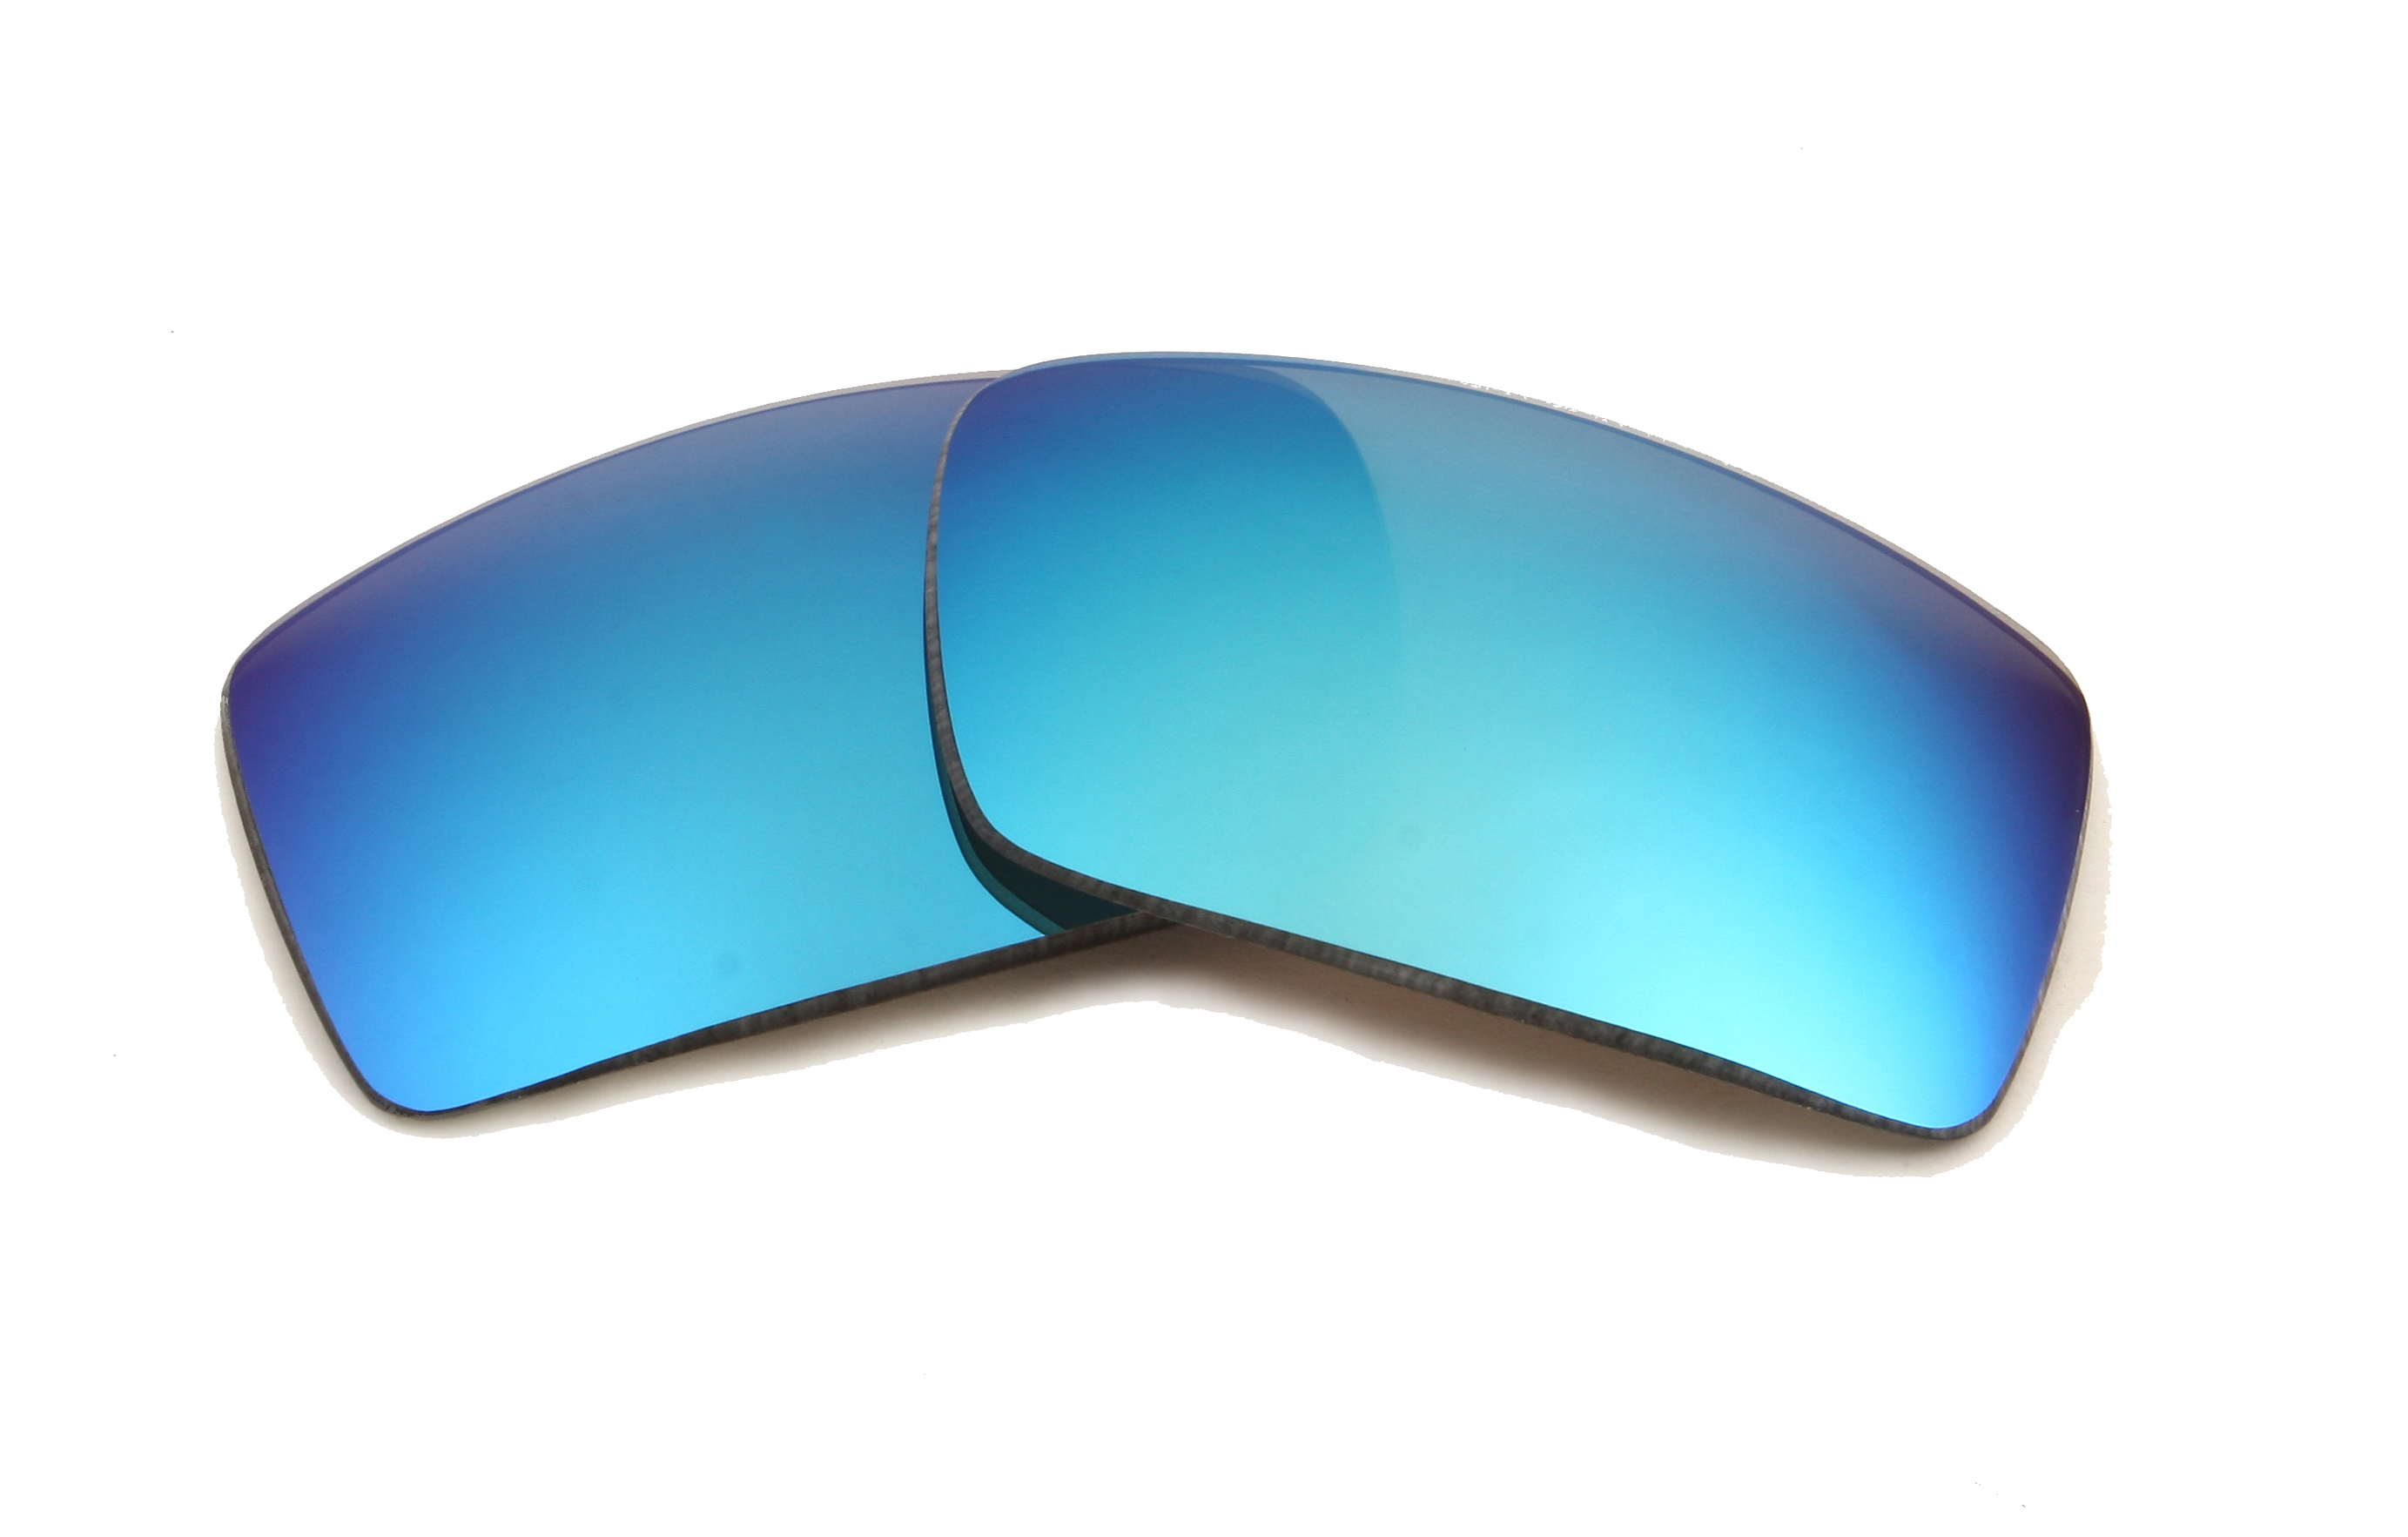 9b544739cd Ray Ban 4057 Replacement Lenses Polarized Blue by SEEK fits RAY BAN  Sunglasses